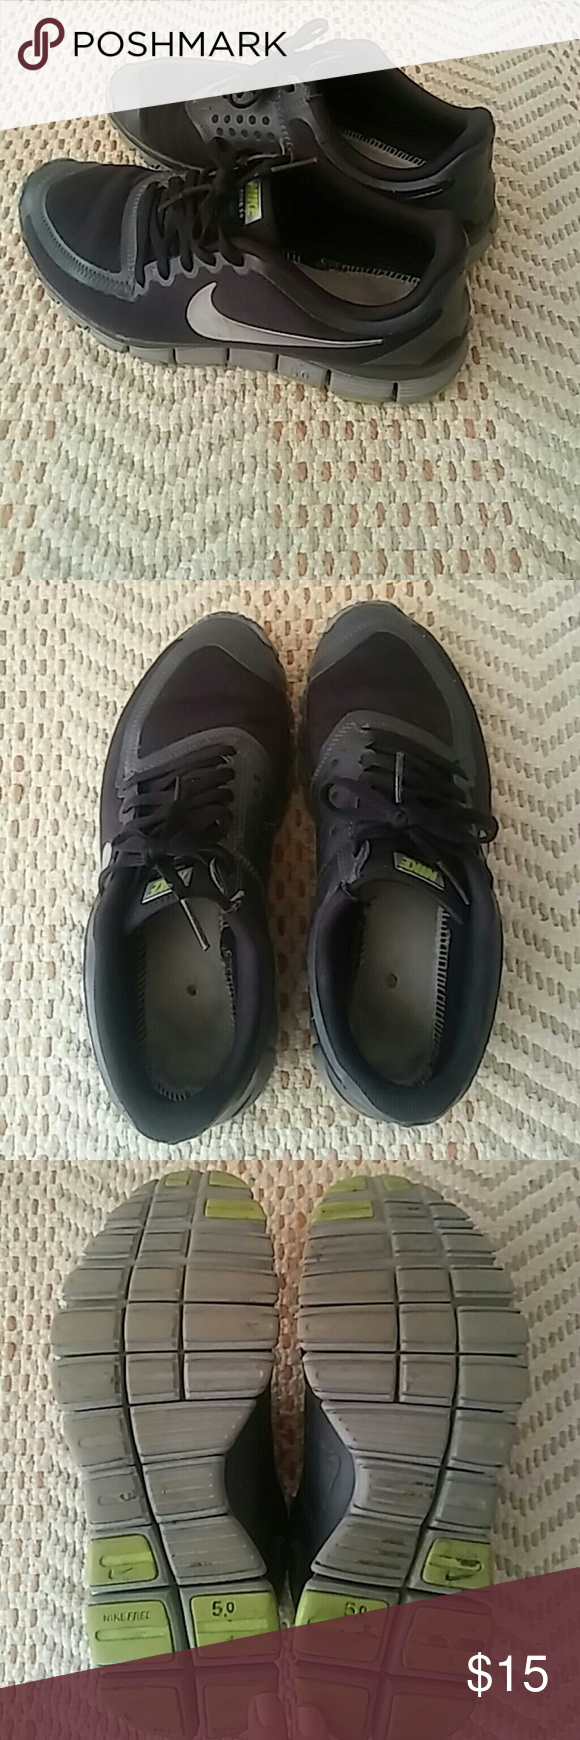 hot sale online 81034 eb244 Black Nike free run 5.0 All black Nike free run 5.0 Size 6 No insoles and  no box. Very good used condition. Slight scuffing on toes and edges (shown  in last ...